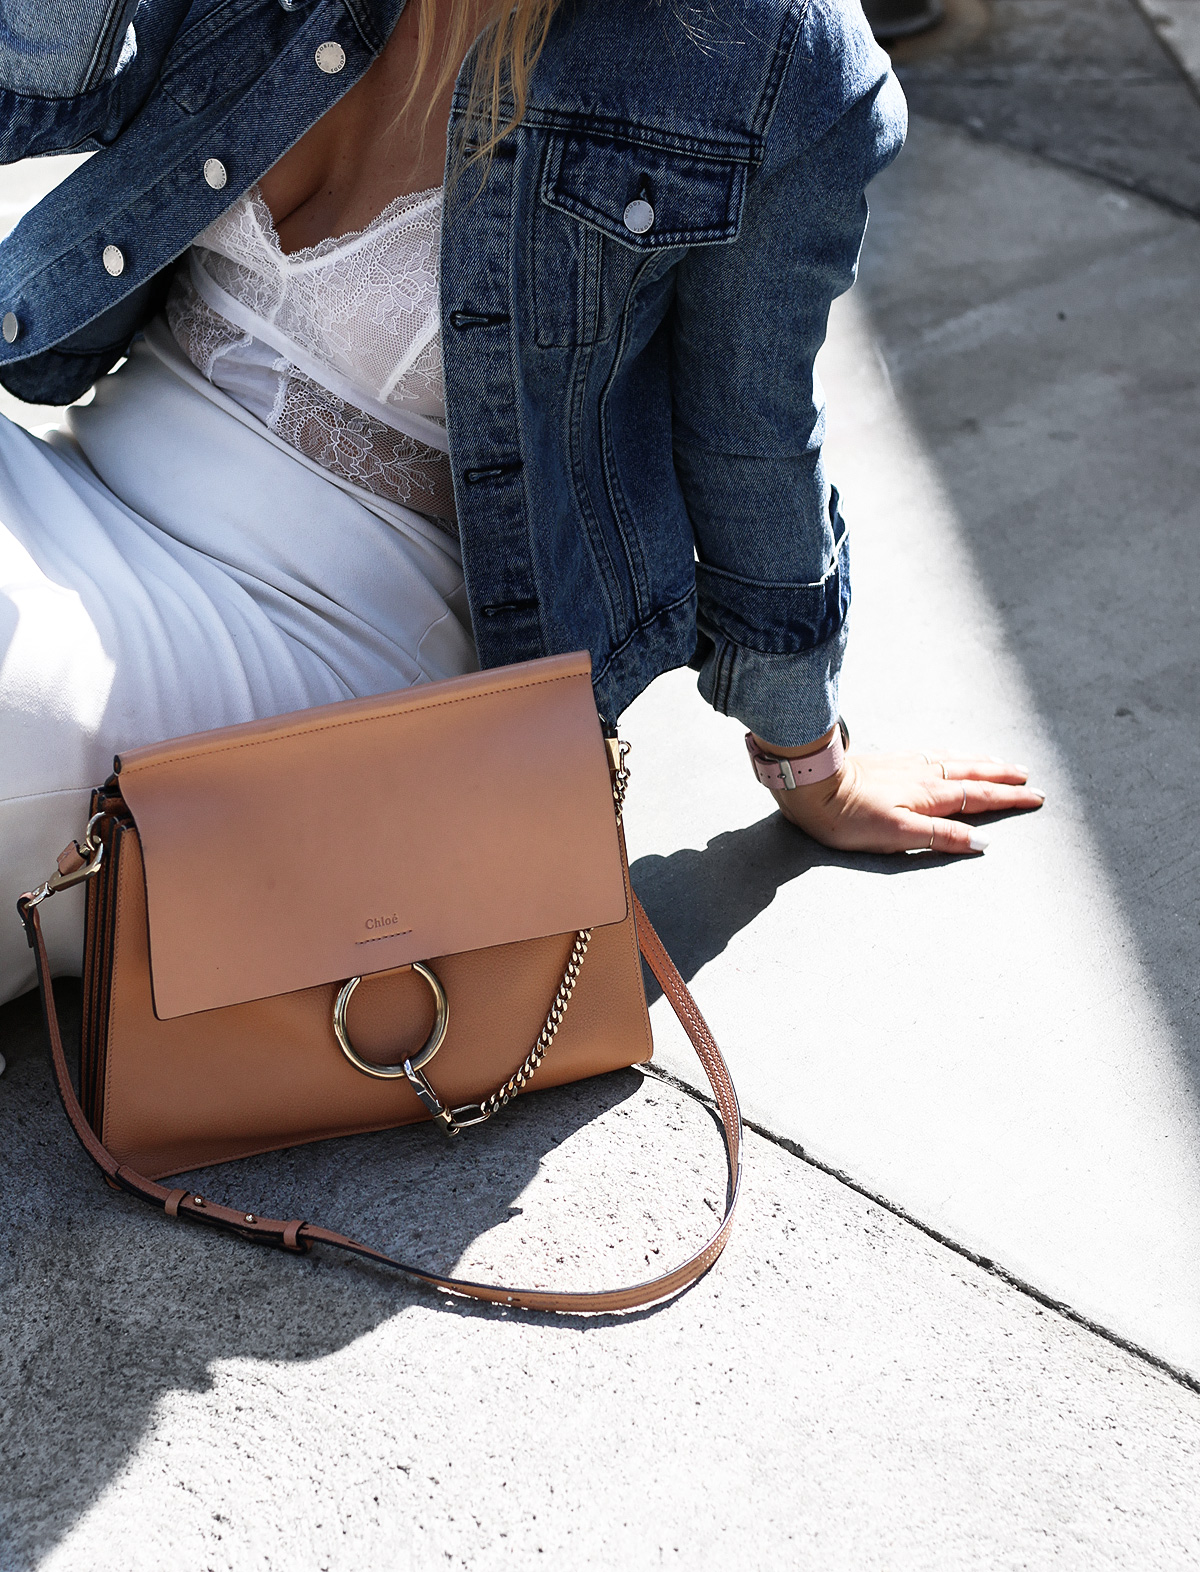 Fashion blogger Lisa Hamilton from See Want Shop styling a lace bodysuit with the Chloe faye bag